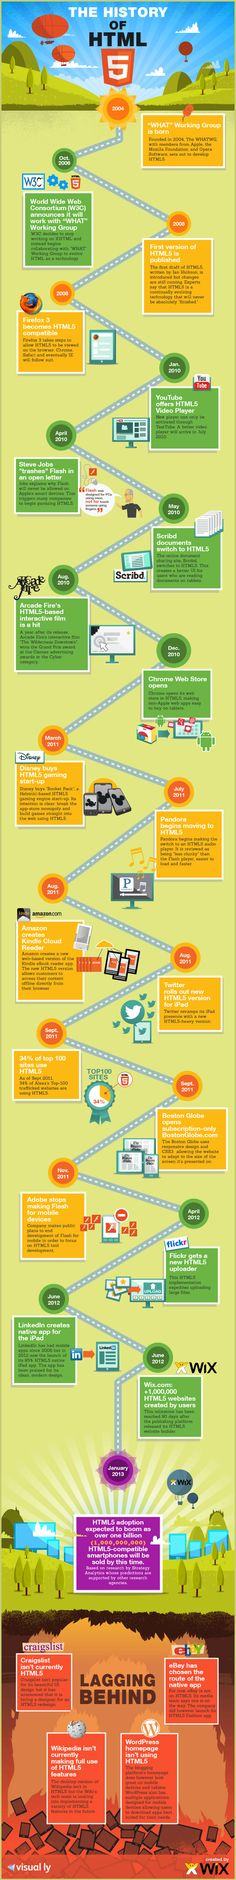 The history of #HTML5. #infografia #infographic #Internet